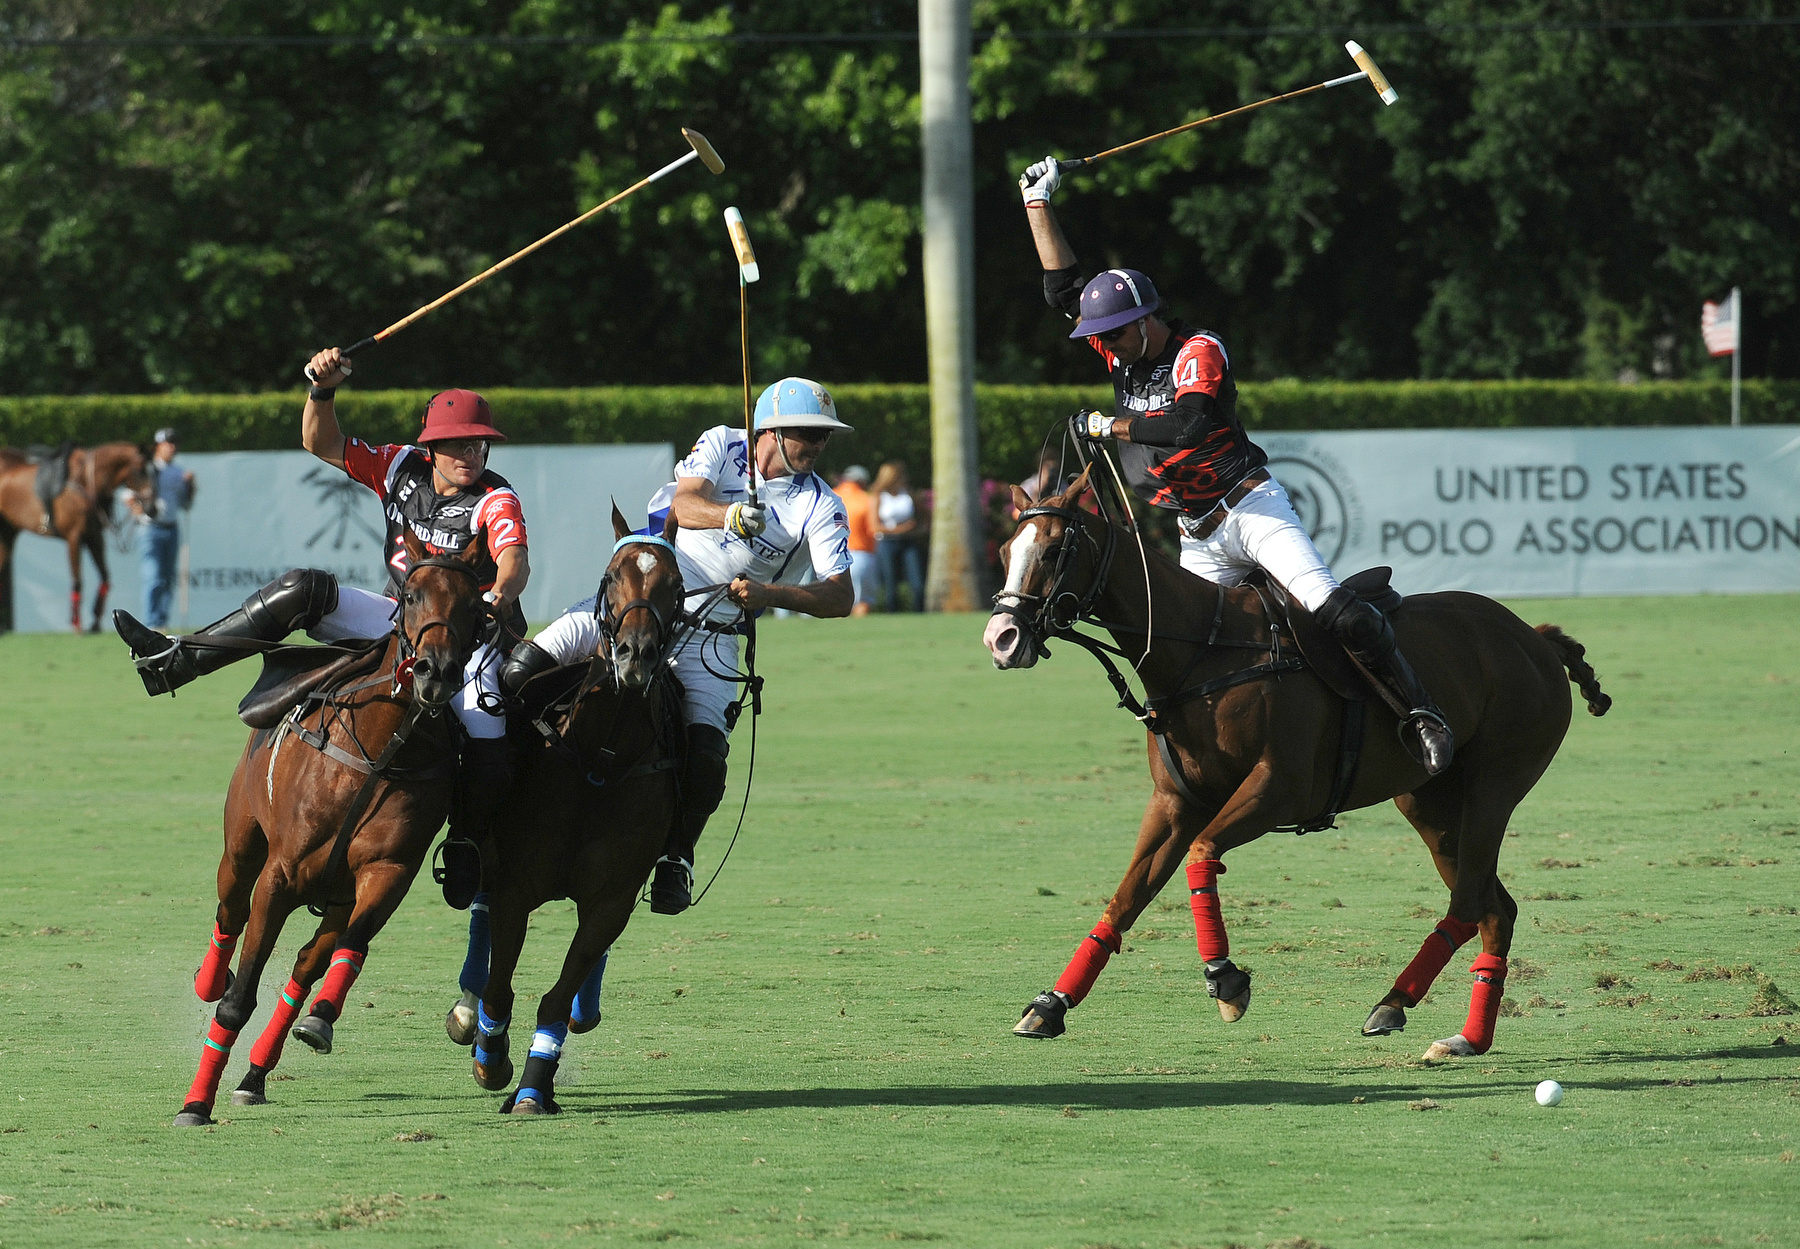 NUVO Daily Edit: The U.S. Open Polo Championship Final in Florida